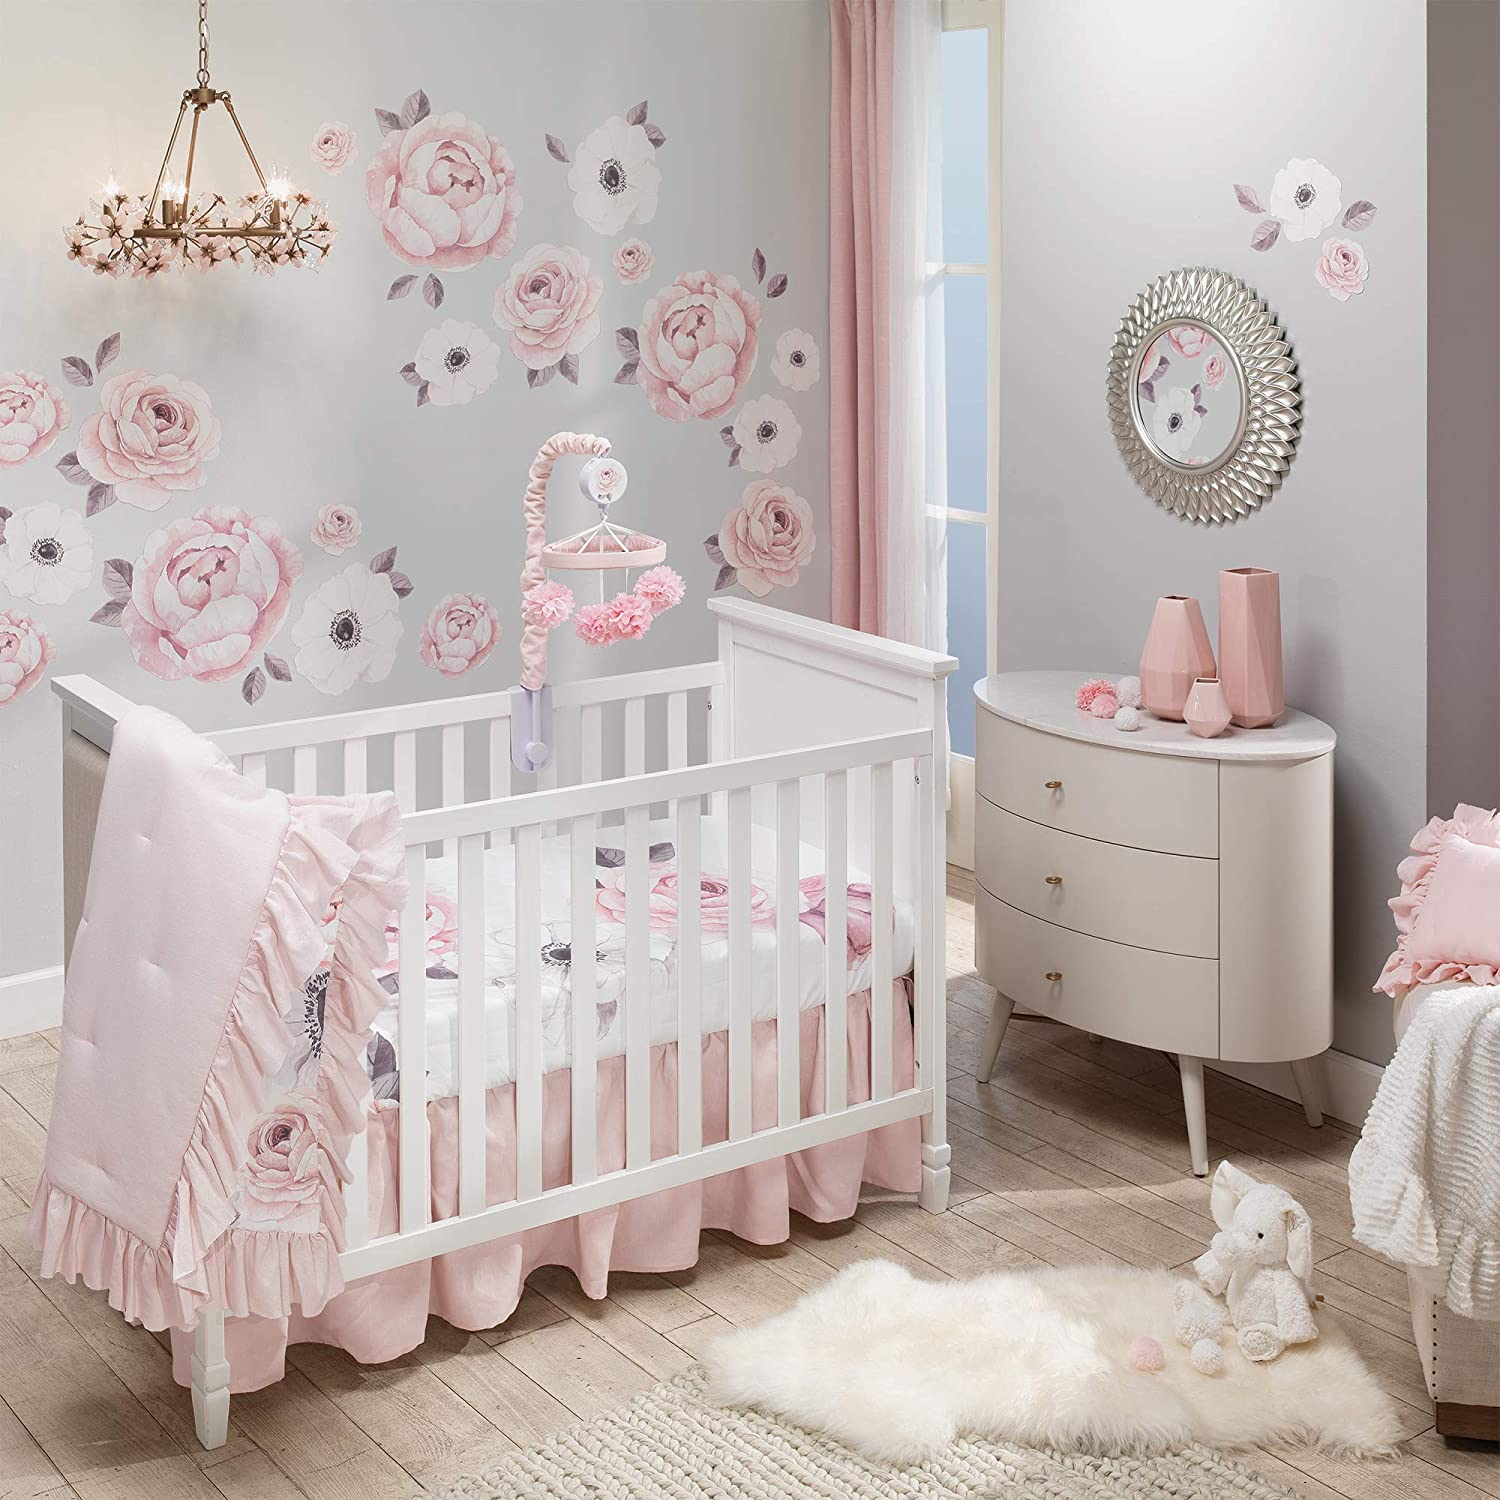 Lambs Ivy Floral Garden Max 86% OFF Watercolor Cri Pink Linen 5-Piece Year-end gift Baby